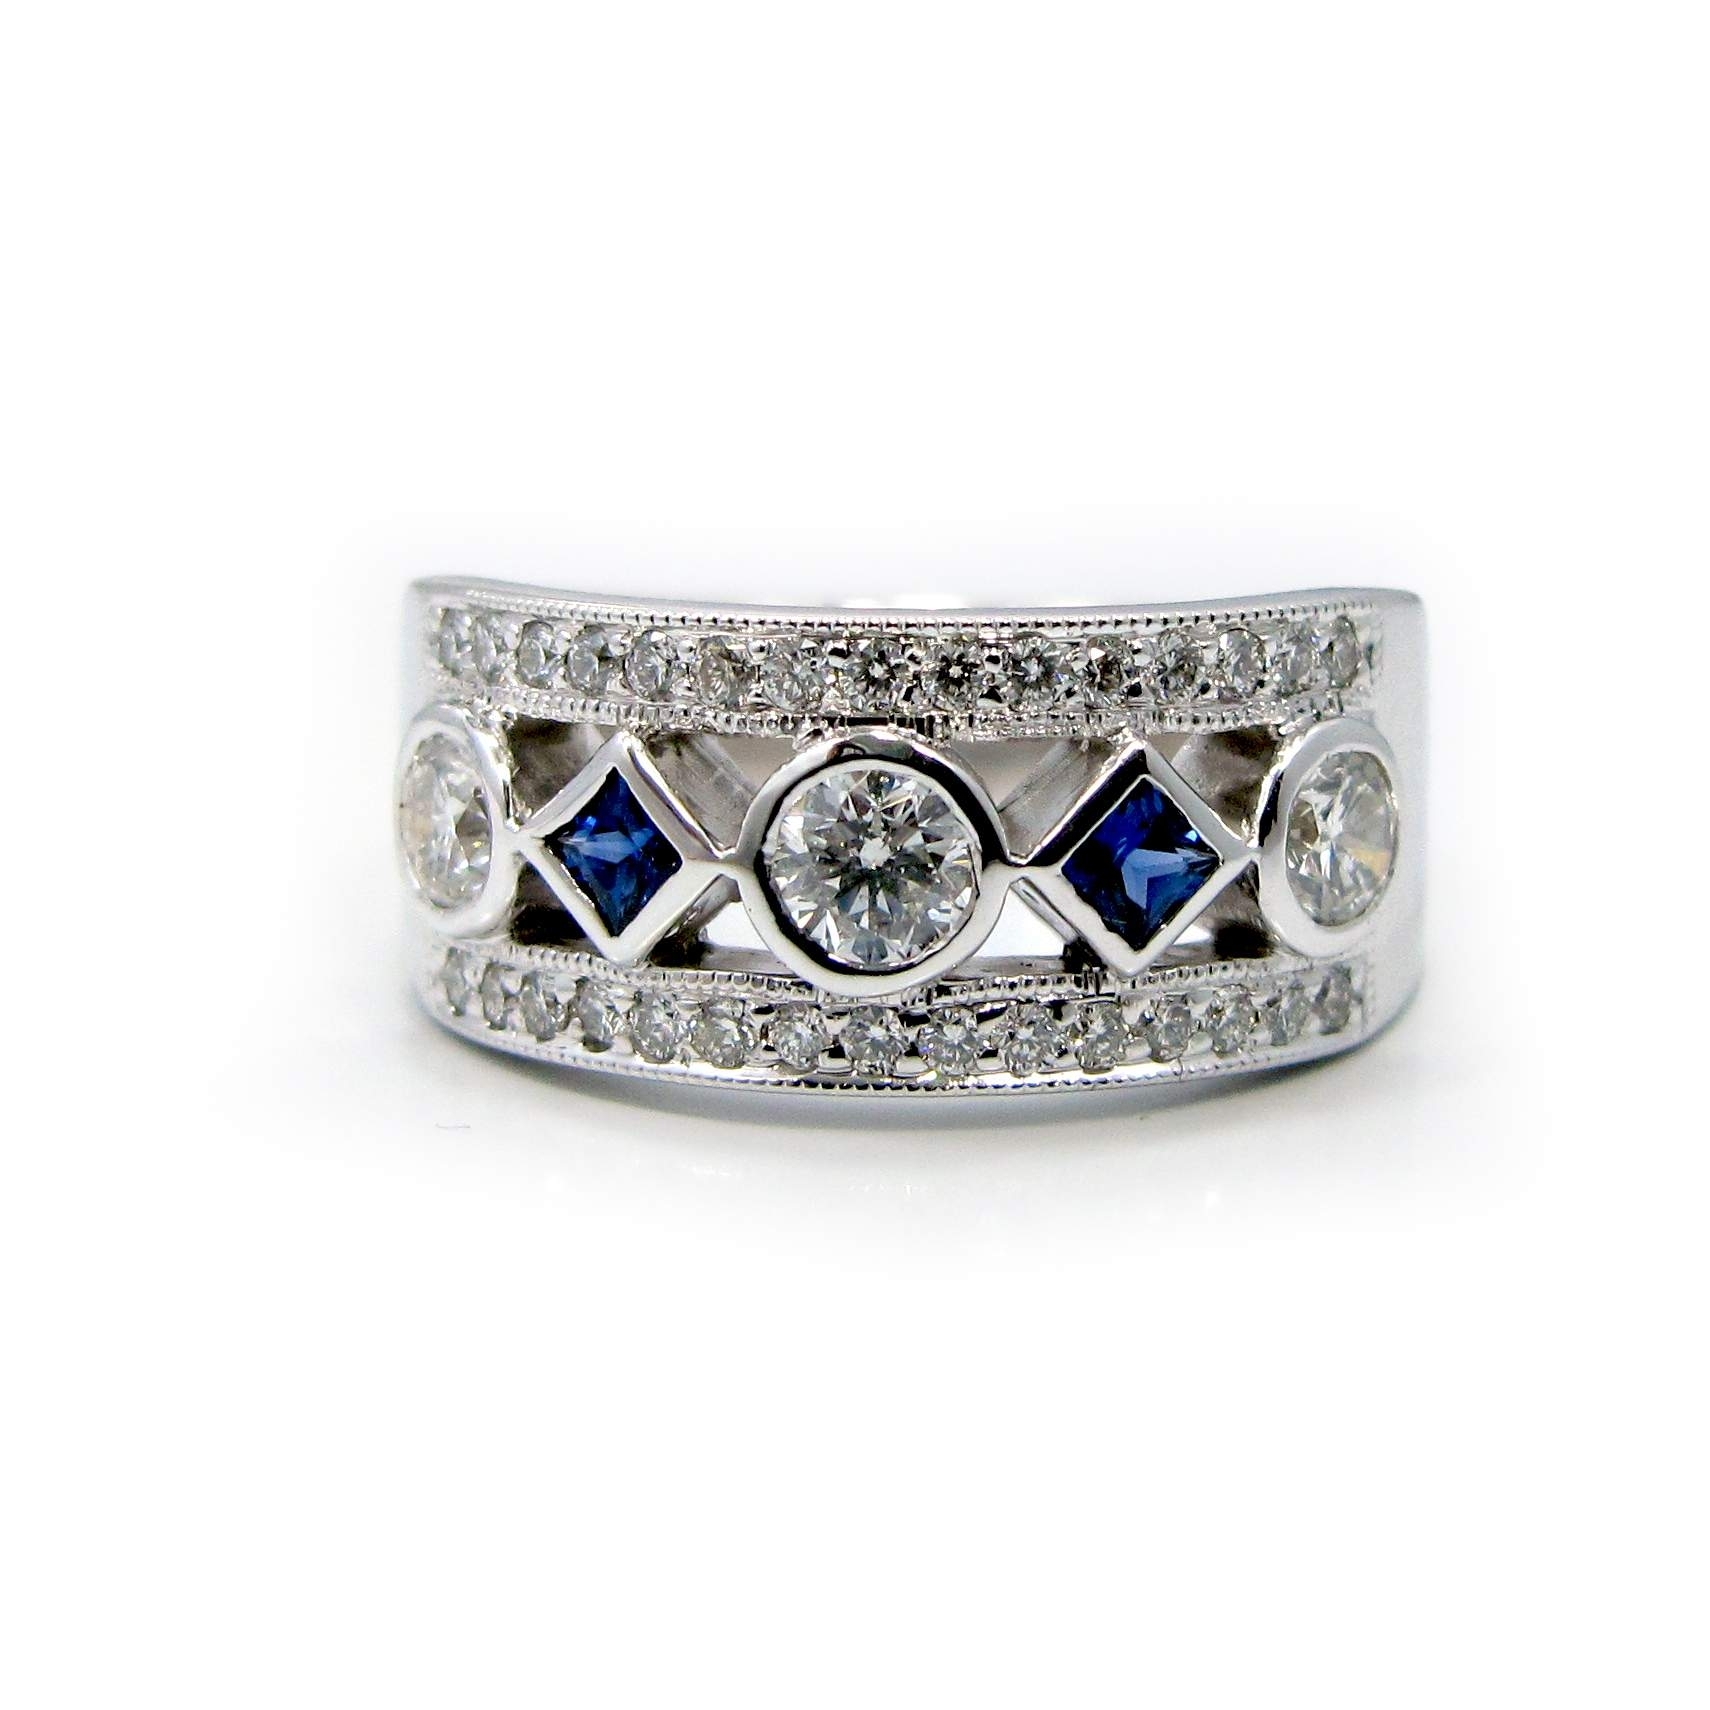 5 Stone Diamond And Princess Cut Blue Sapphire Ring | Reuven Gitter Within Newest Princess Cut Blue Sapphire And Diamond Five Stone Rings In 14k White Gold (View 4 of 15)